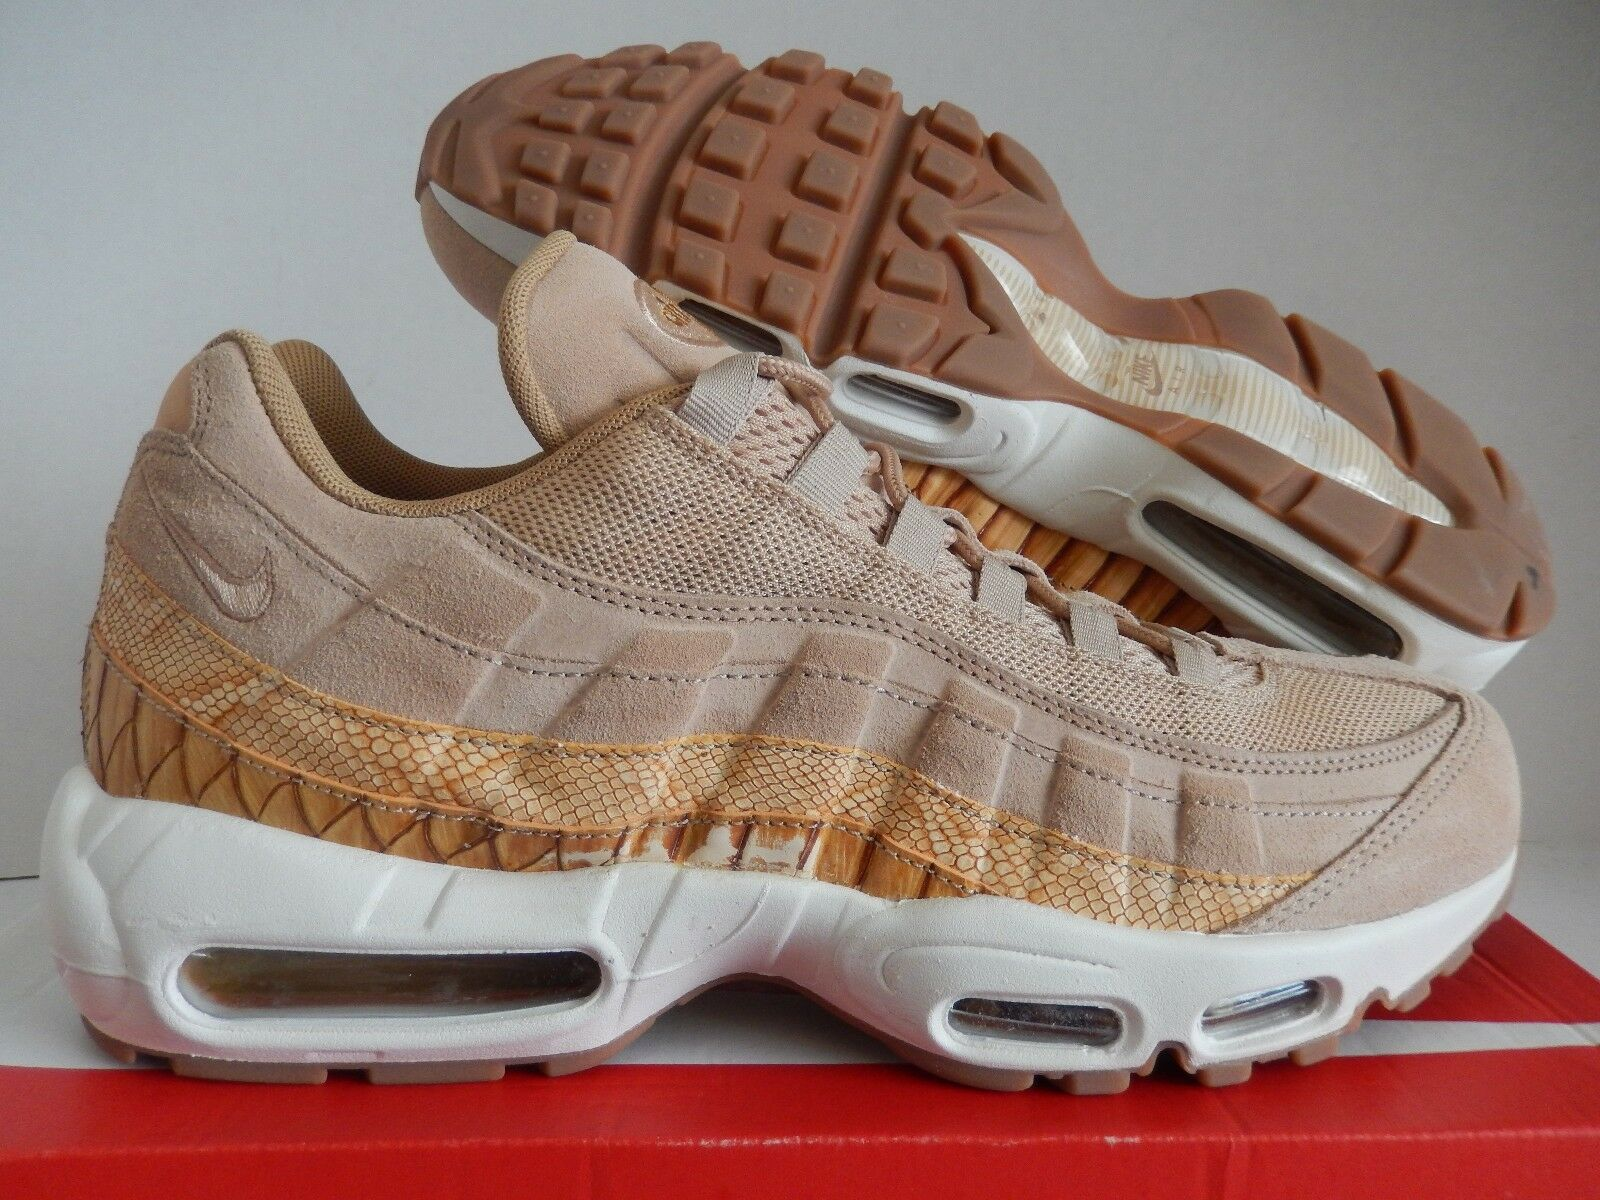 NIKE AIR MAX 95 PREMIUM SE VACHETTA TAN Marron SZ 11 [924478-201]